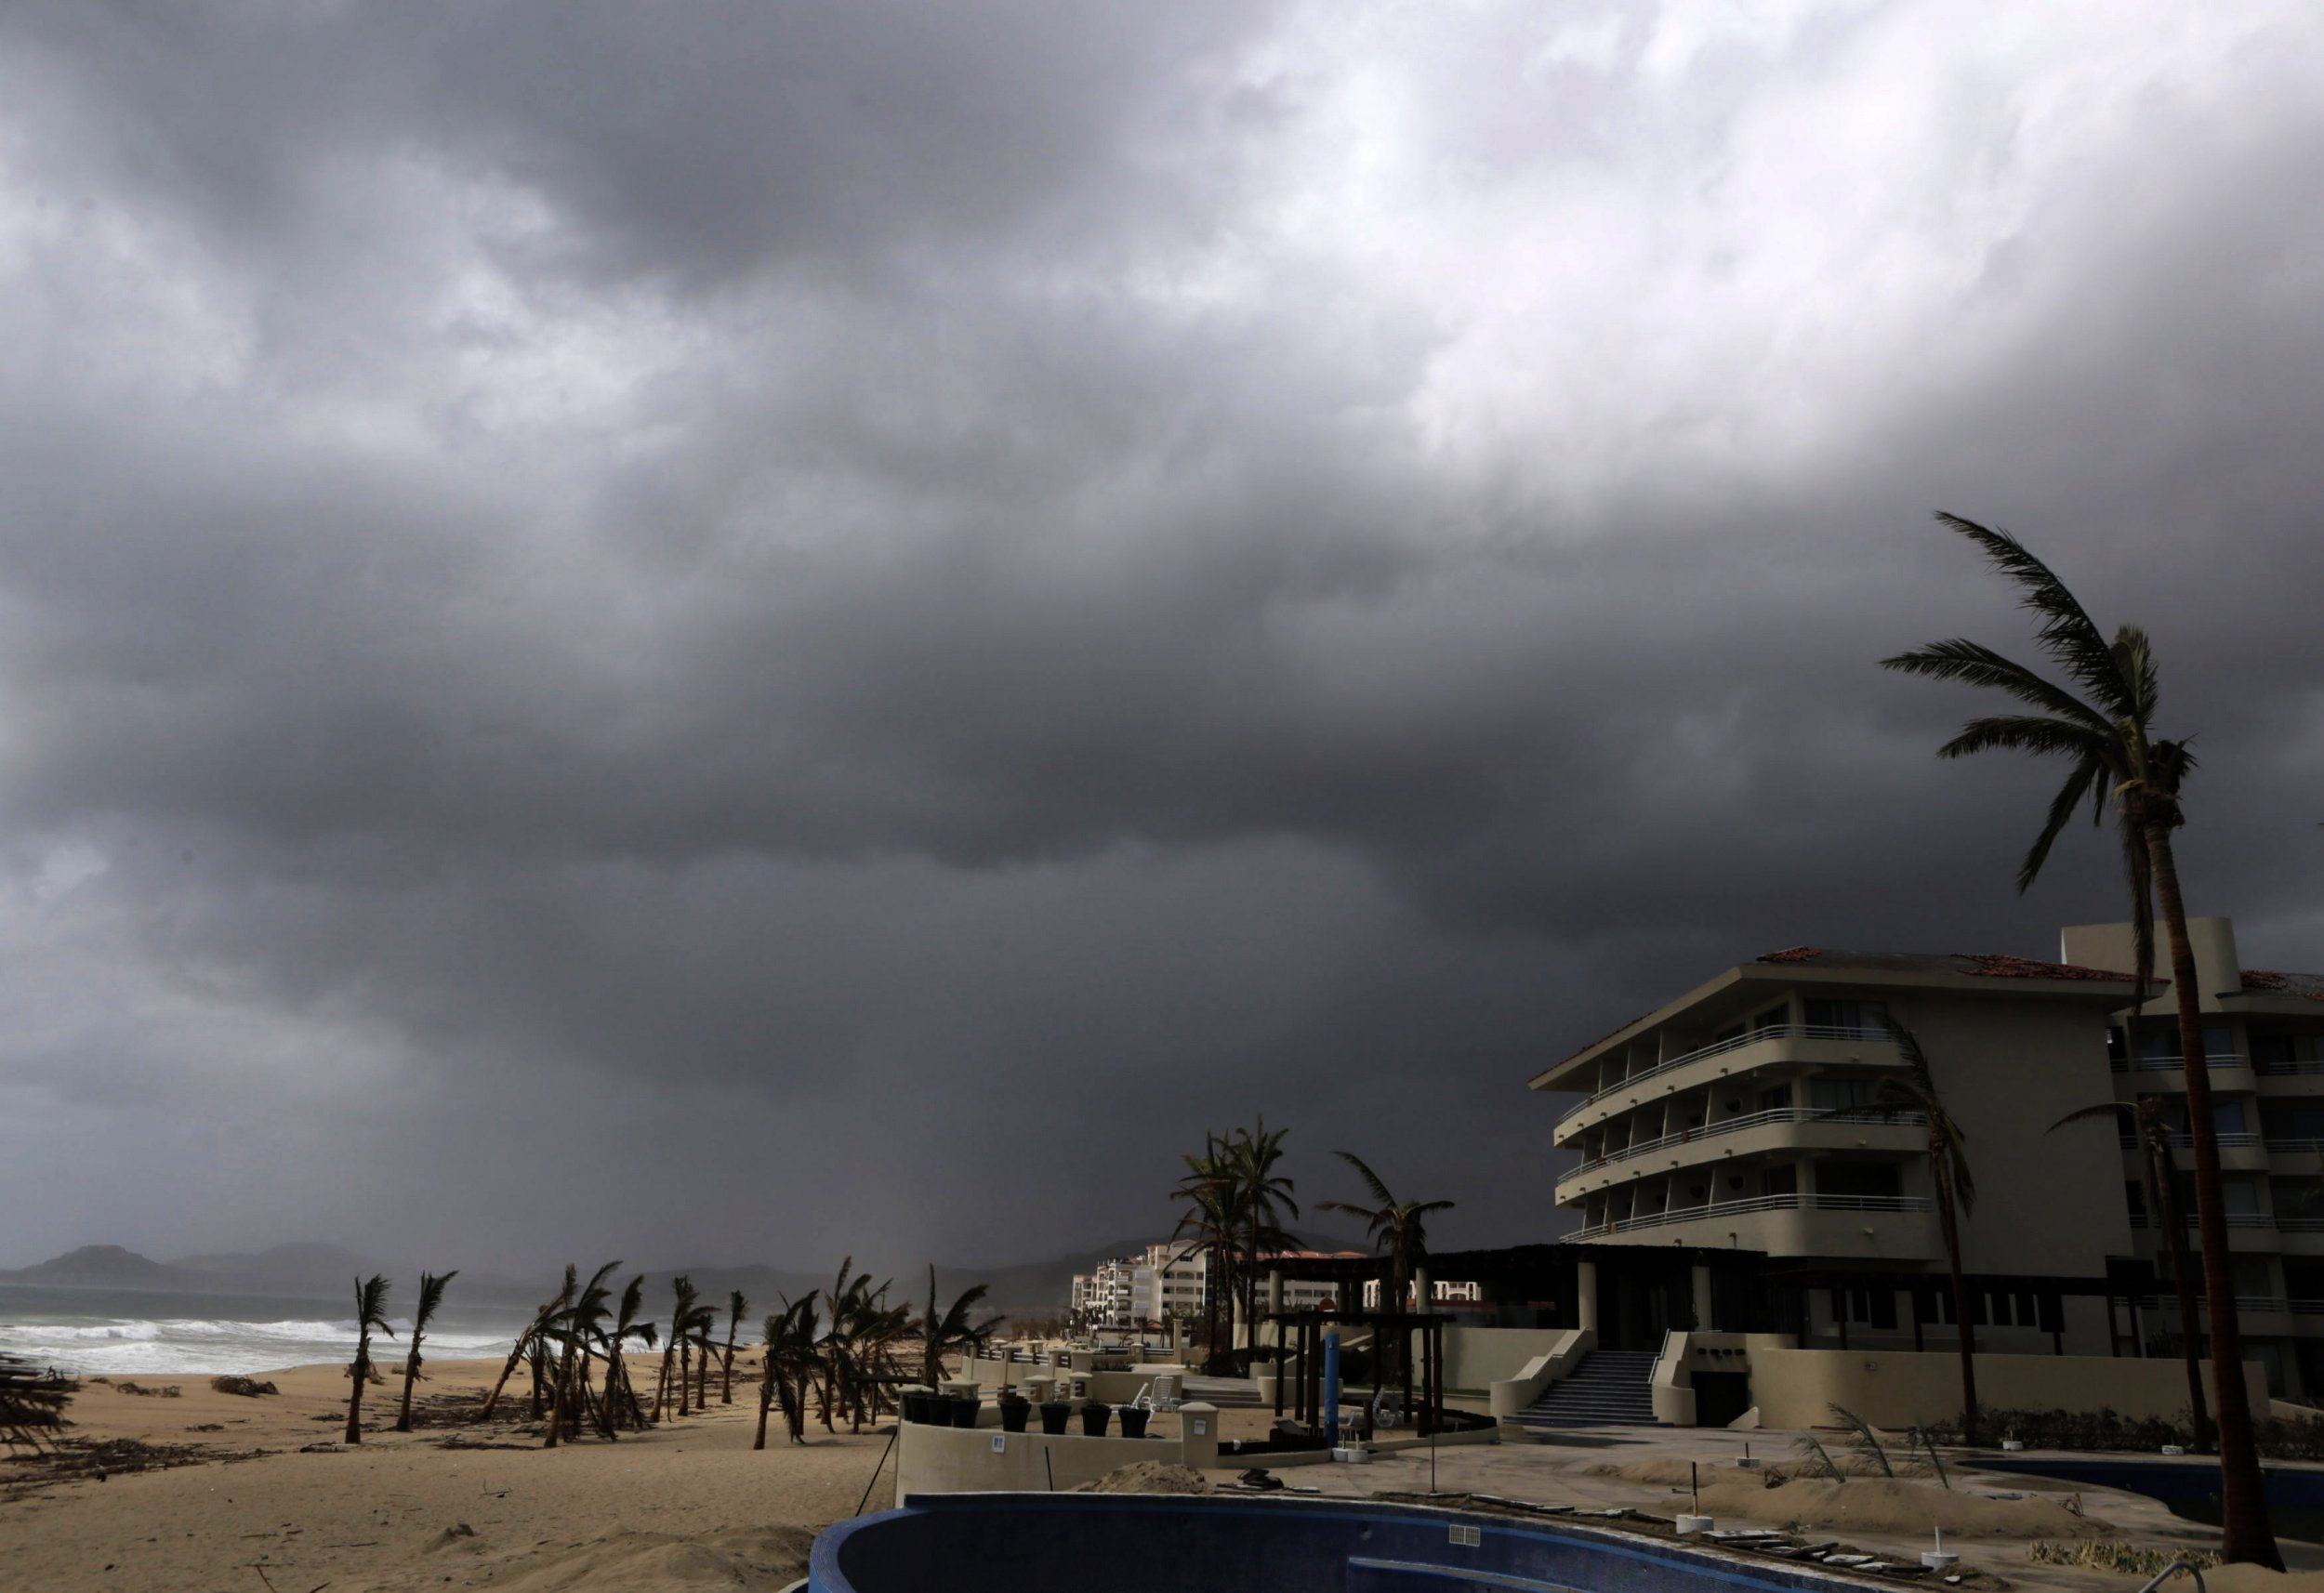 Mexico 14 bodies found in mass grave near gang plagued tourist resort in baja california sur - San jose del cabo ...